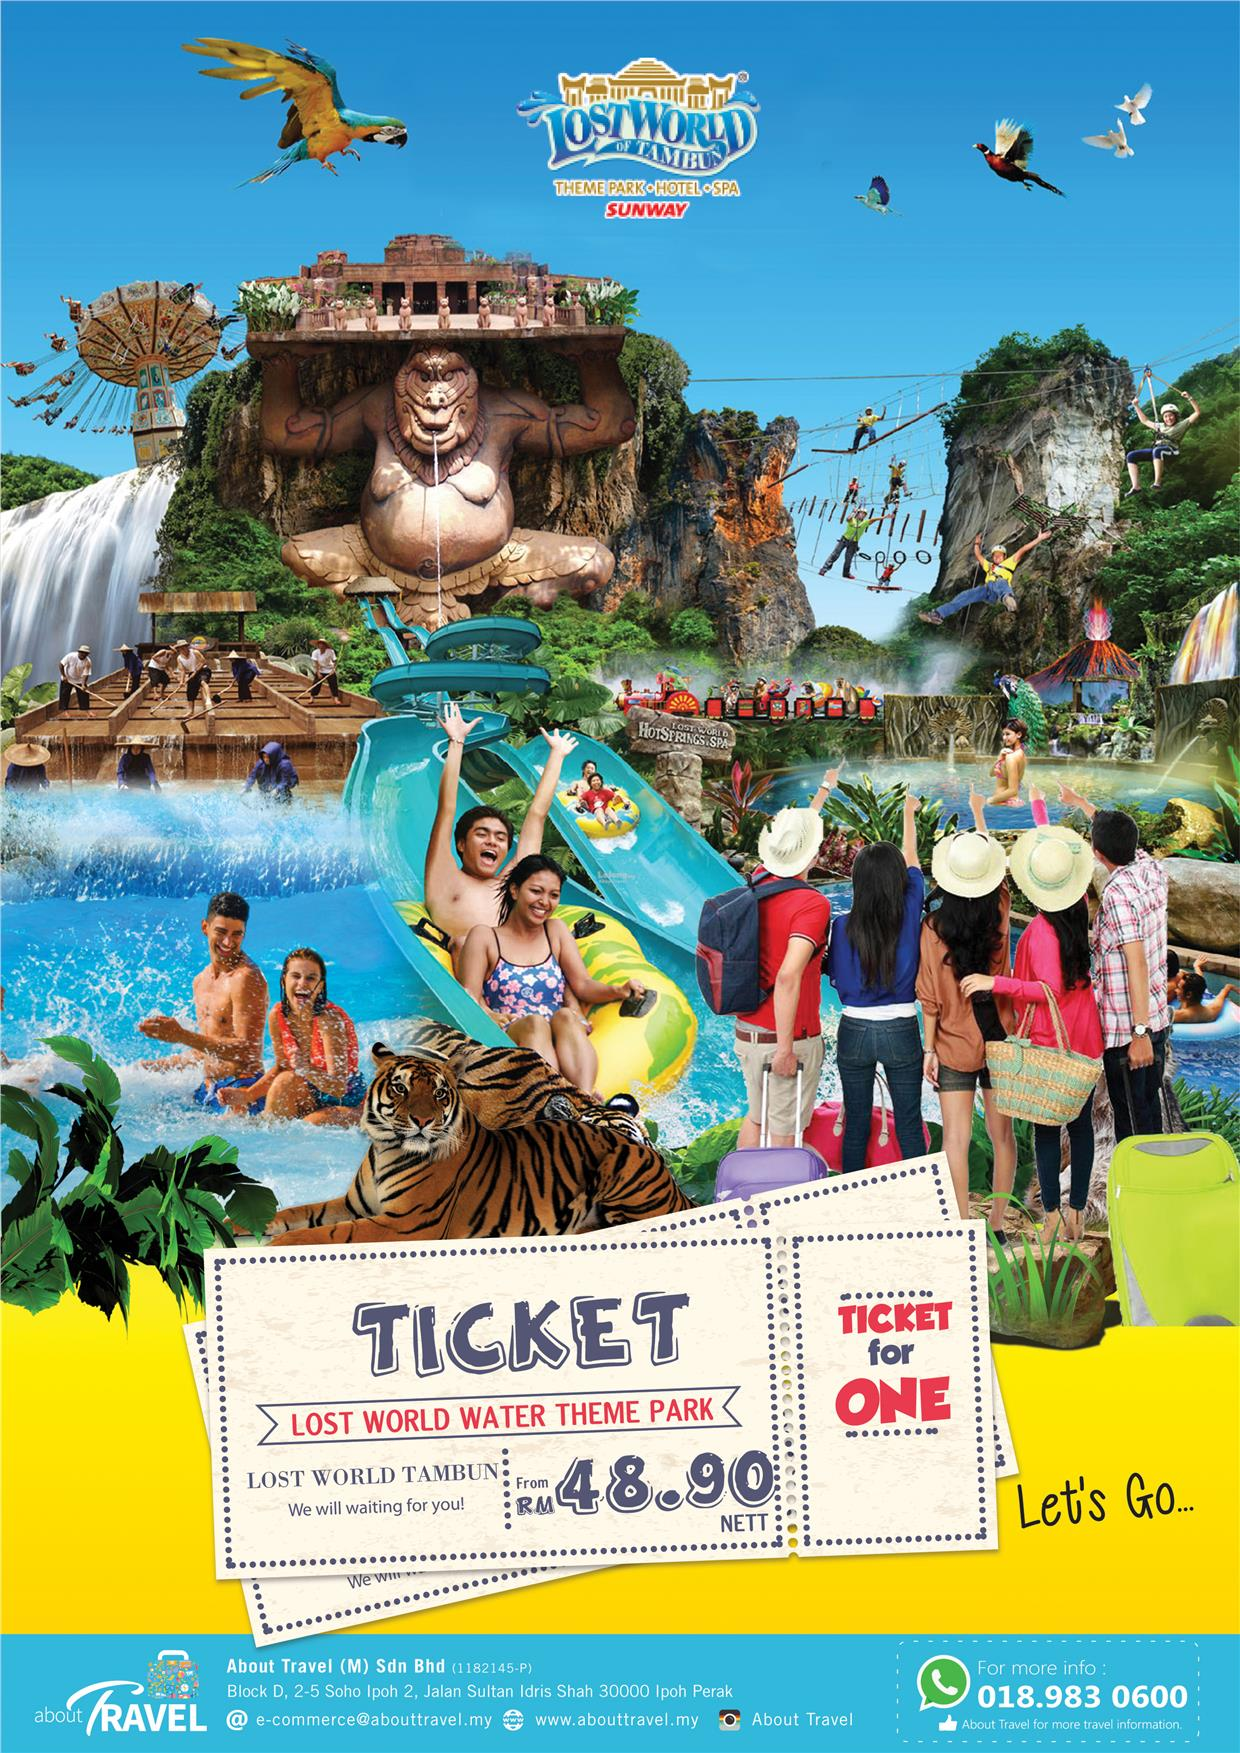 Lost world of tambun theme park tic end 5312017 1247 pm lost world of tambun theme park tickets gumiabroncs Choice Image